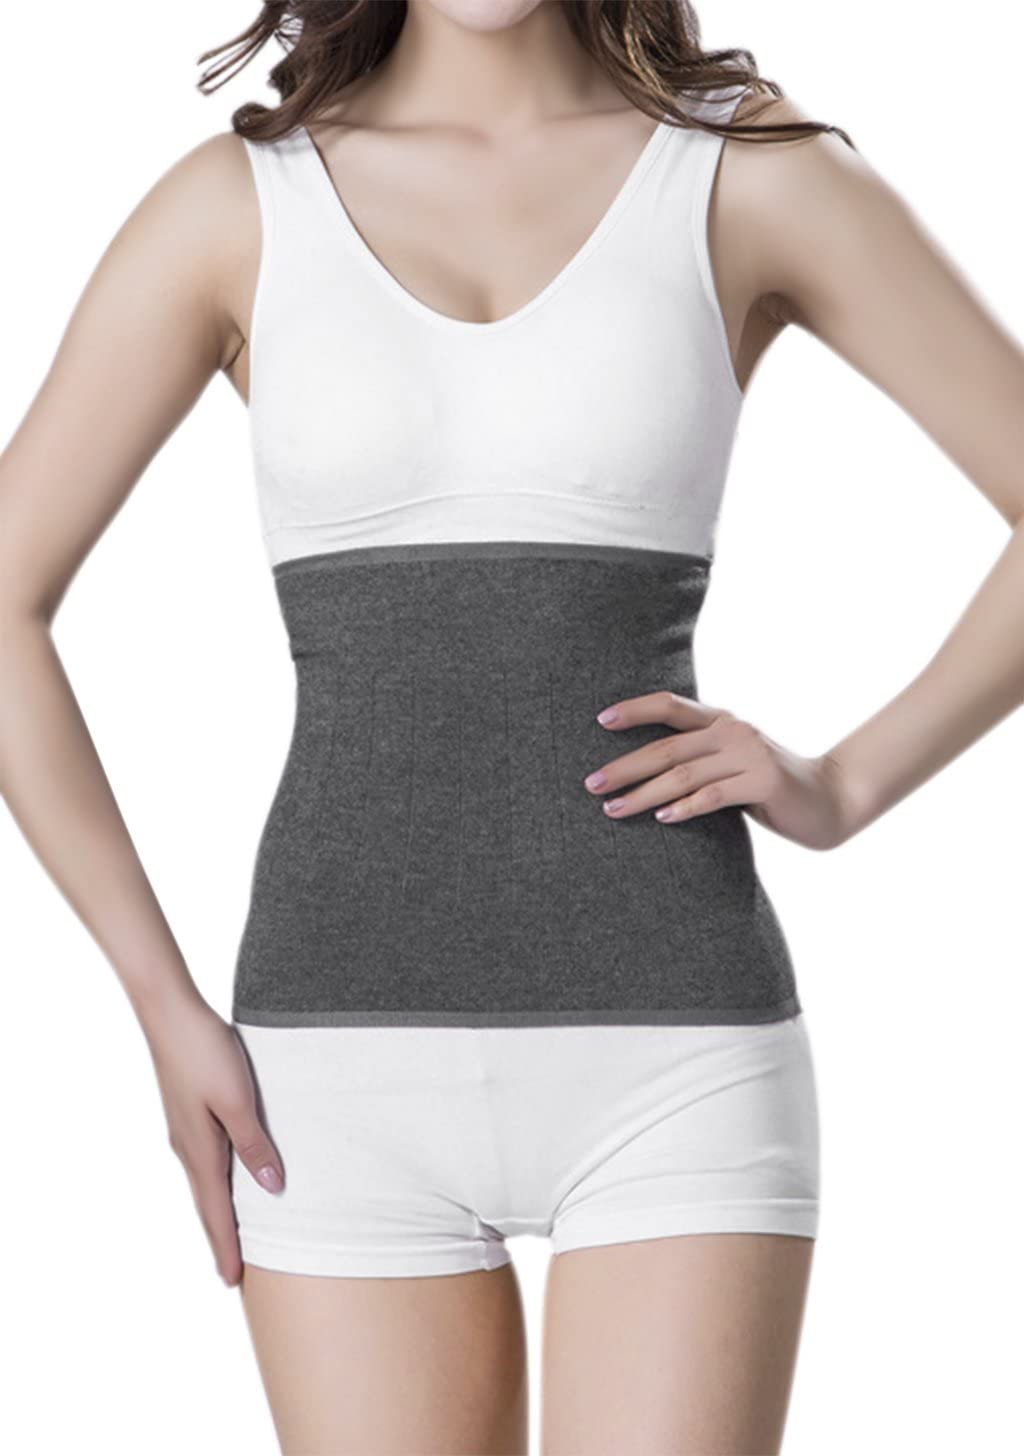 Kidney Warmer Lumbar Supports Abdominal Band Hip Waist Supports Kidney Protection Jersey Band Back Warmer Elastic Lower Waist Support Belt Compression Wool Warming Belt Body Warmer Wrapper Gift